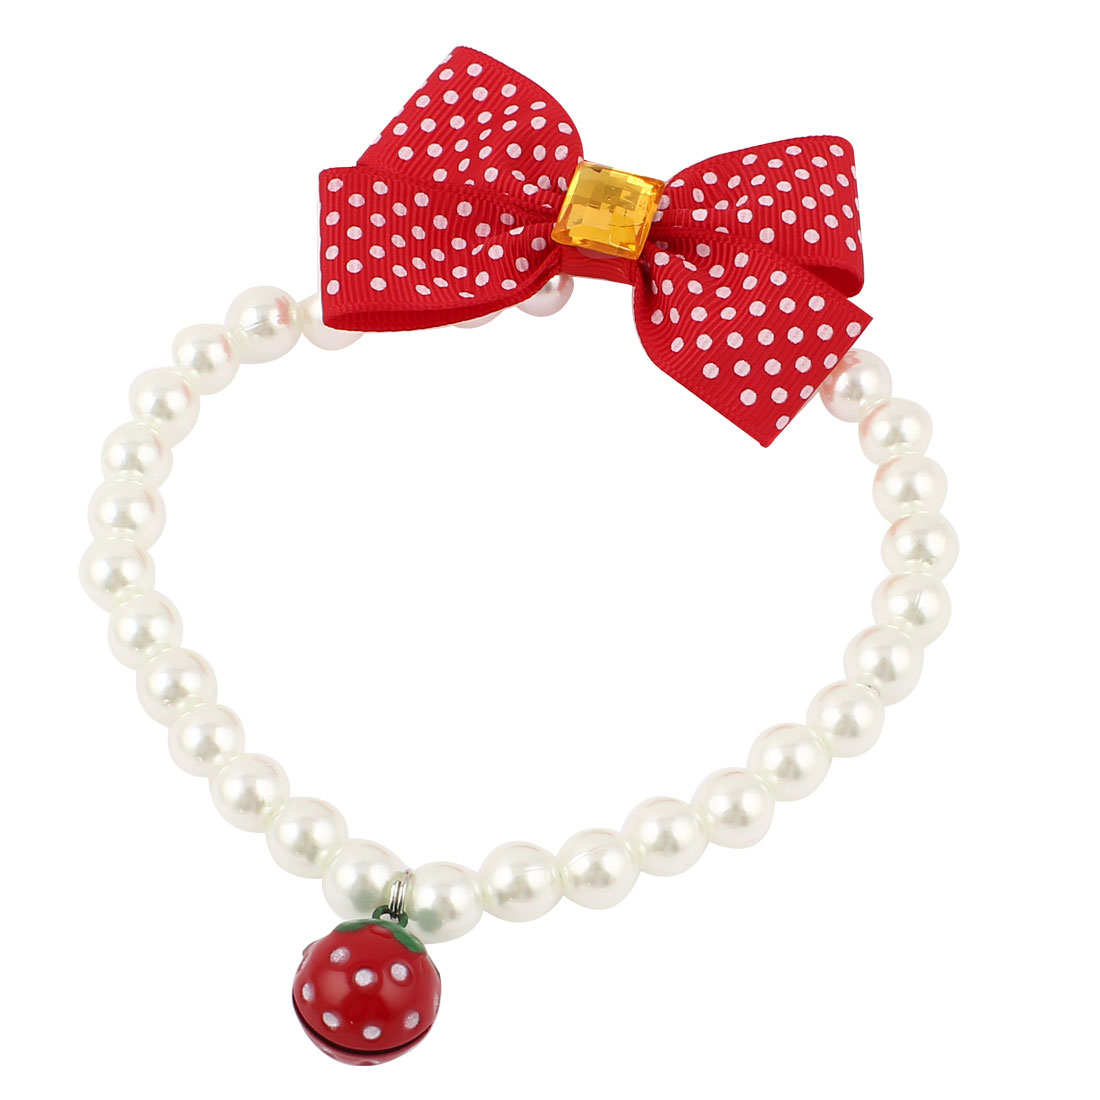 Metal Bell Pendant Bowtie Accent Pet Dog Plastic Beads Pearls Collar Necklace White Red M